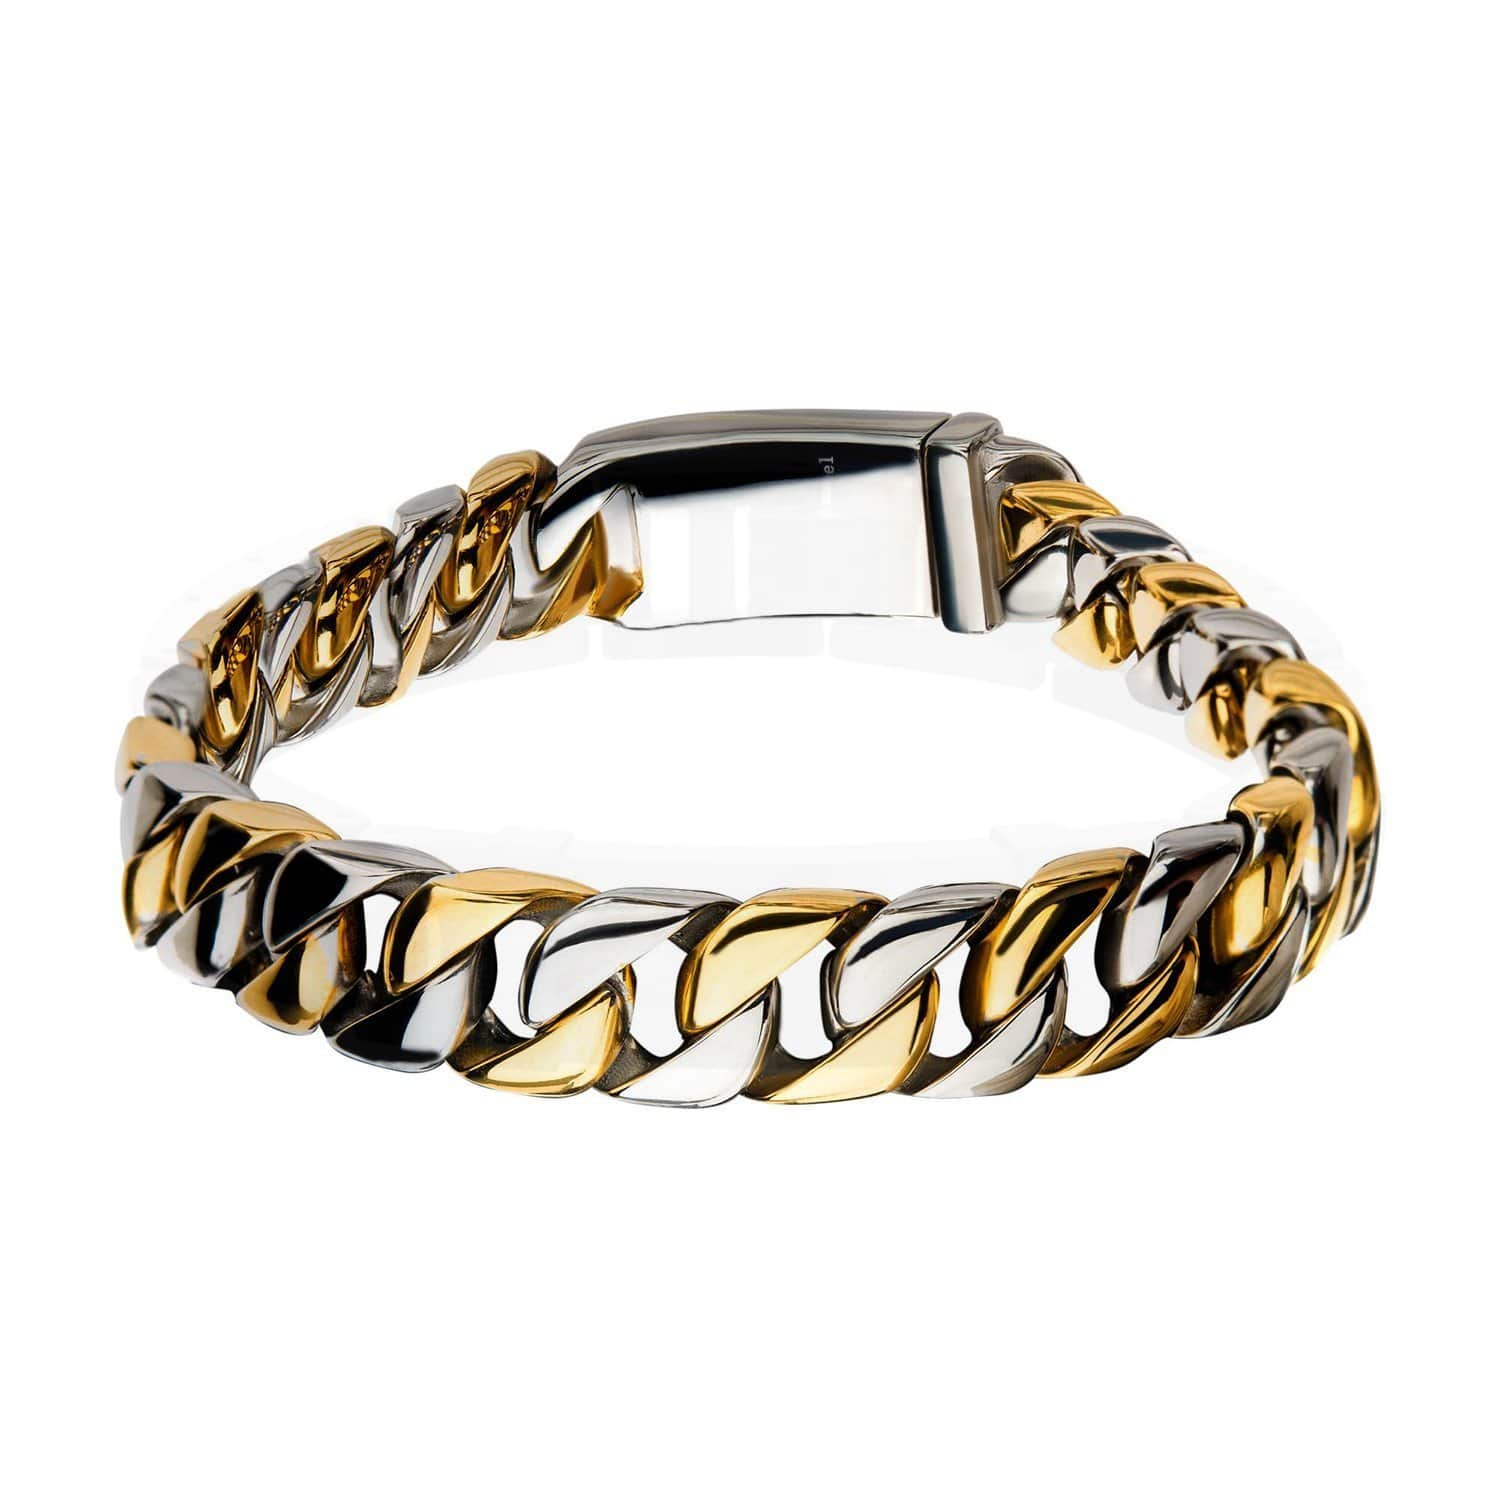 Gold & Silver Stainless Steel Two Tone Curb Chain Bracelet